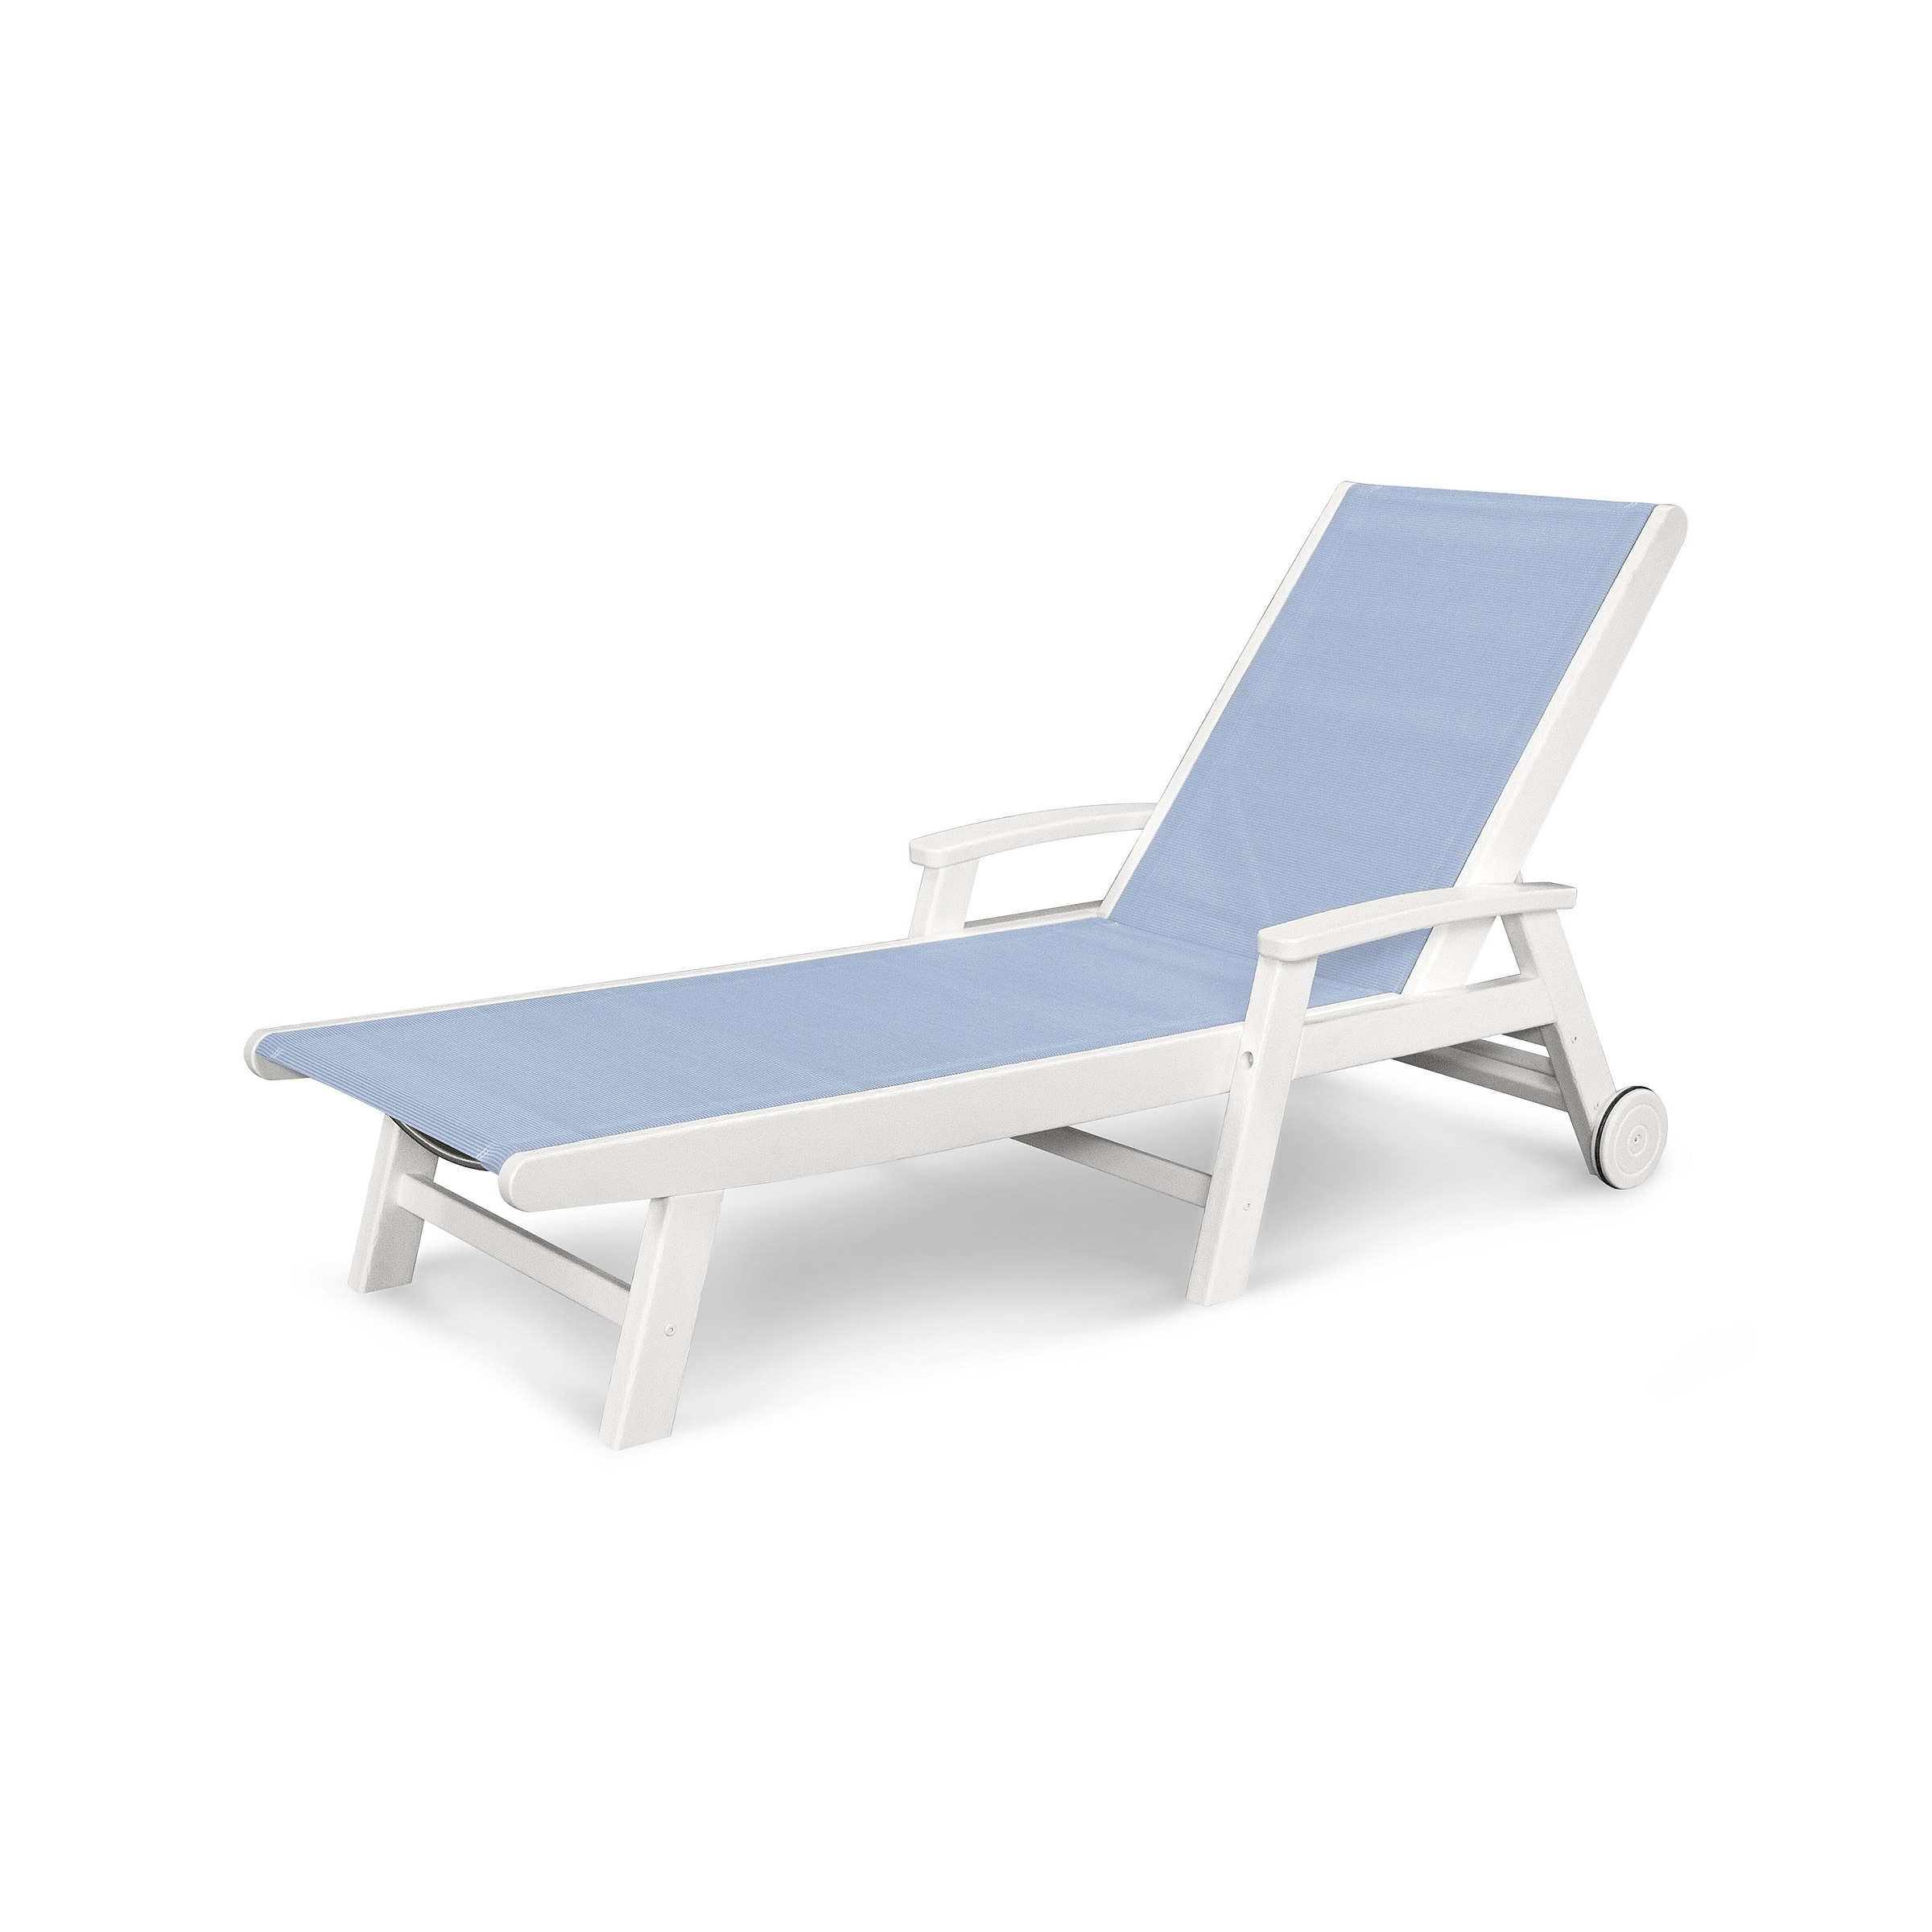 Most Up To Date Hotel Pool Chaise Lounge Chairs Inside Polywood Furniture (View 10 of 15)